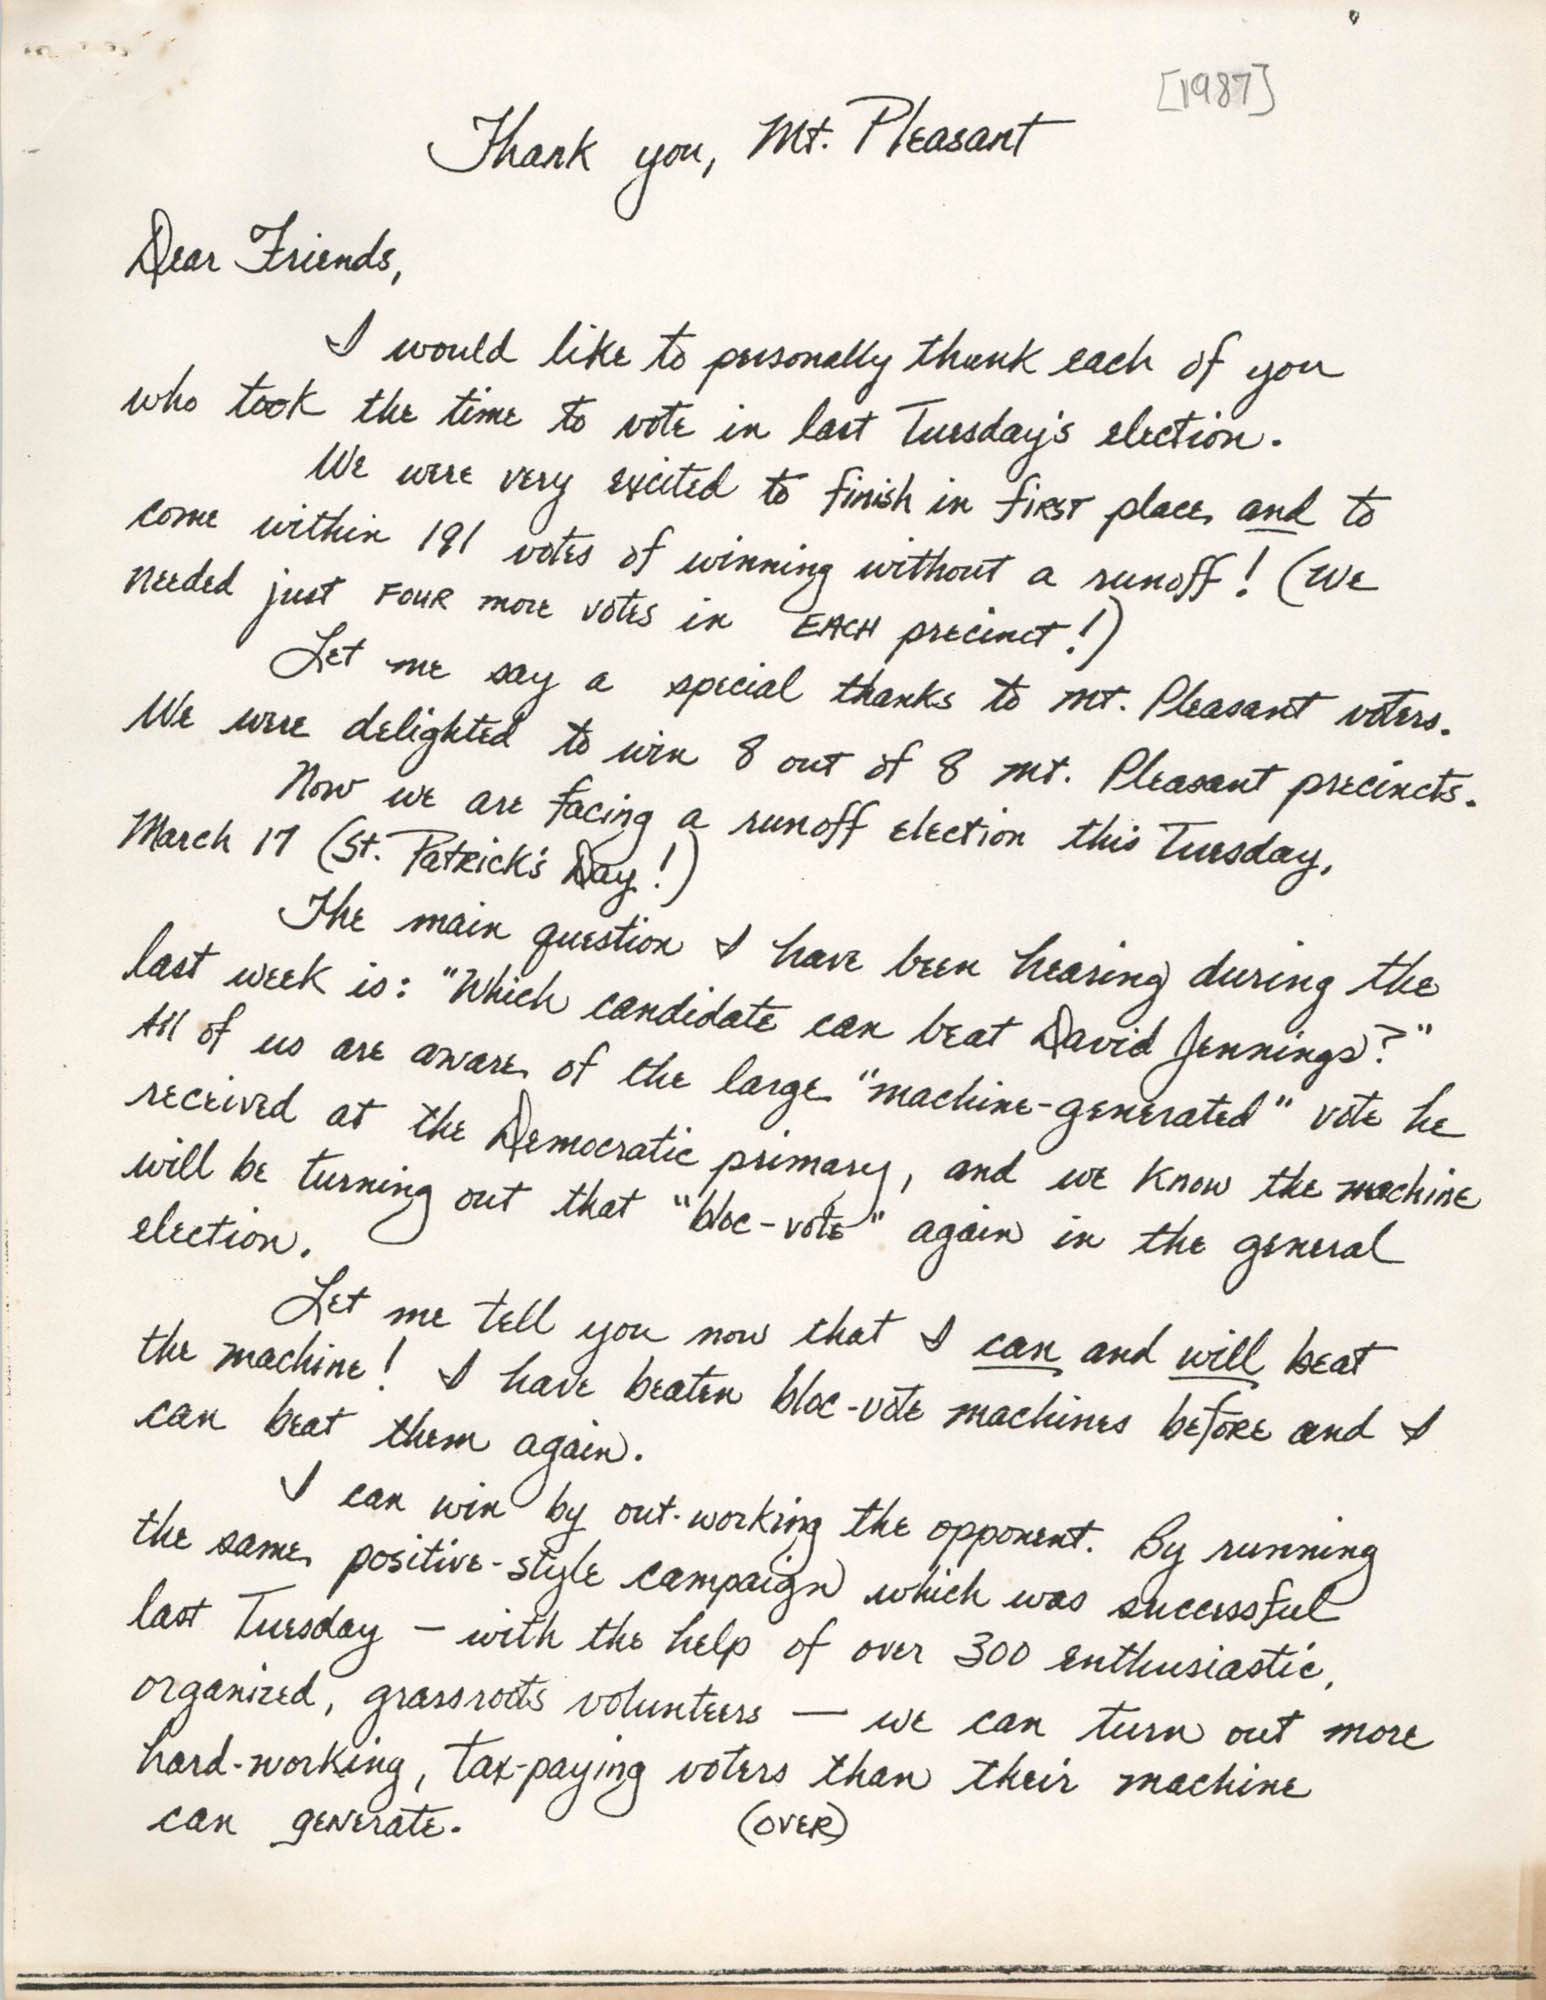 Letter from Sherry Martschink, 1987